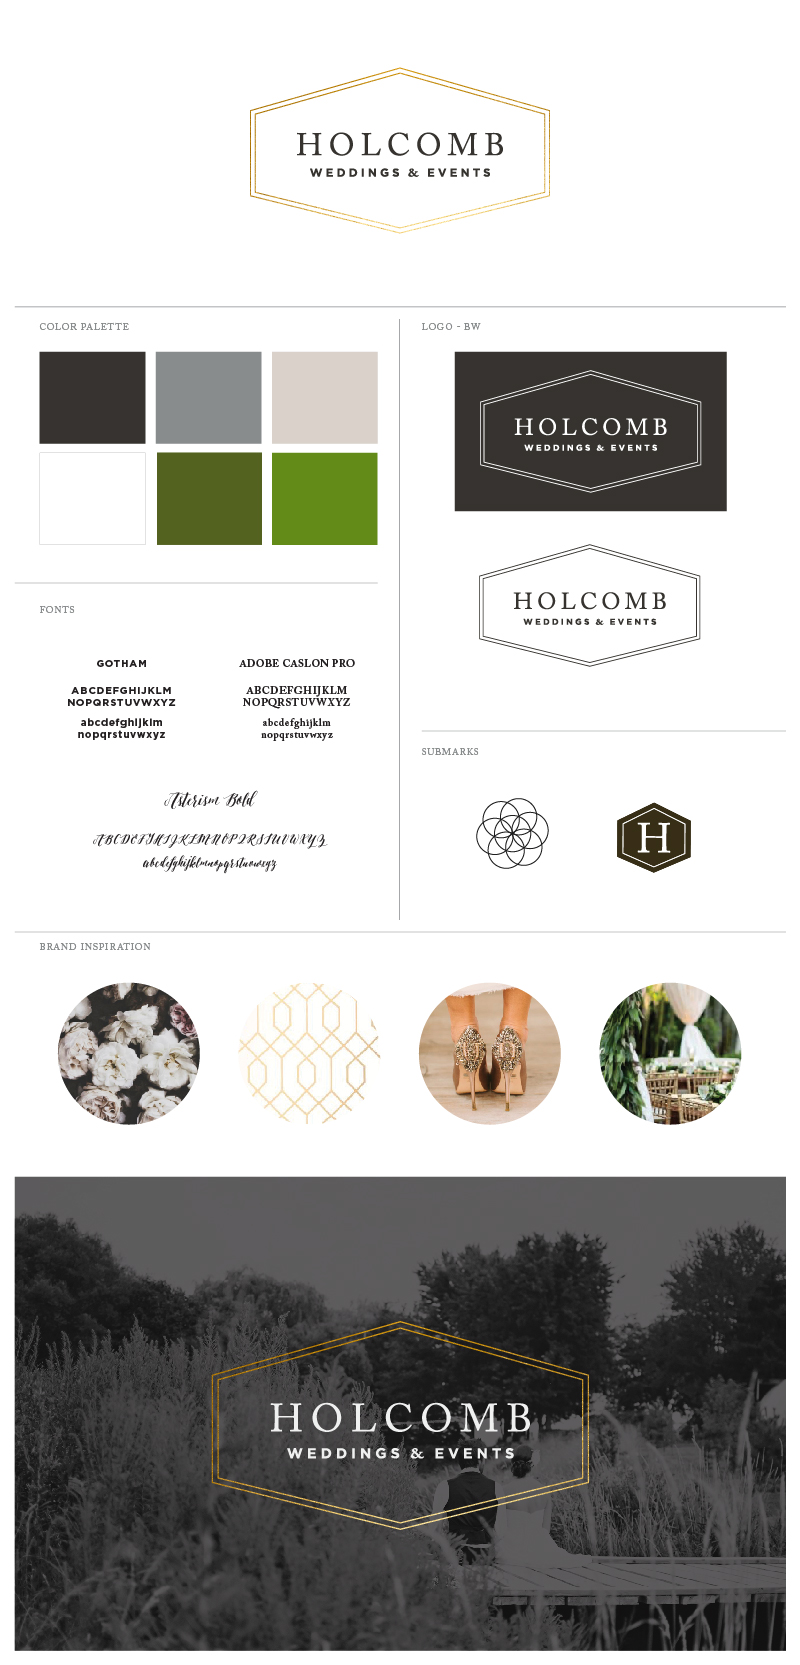 Holcomb Style Guide - Samantha Madeo Graphic Design